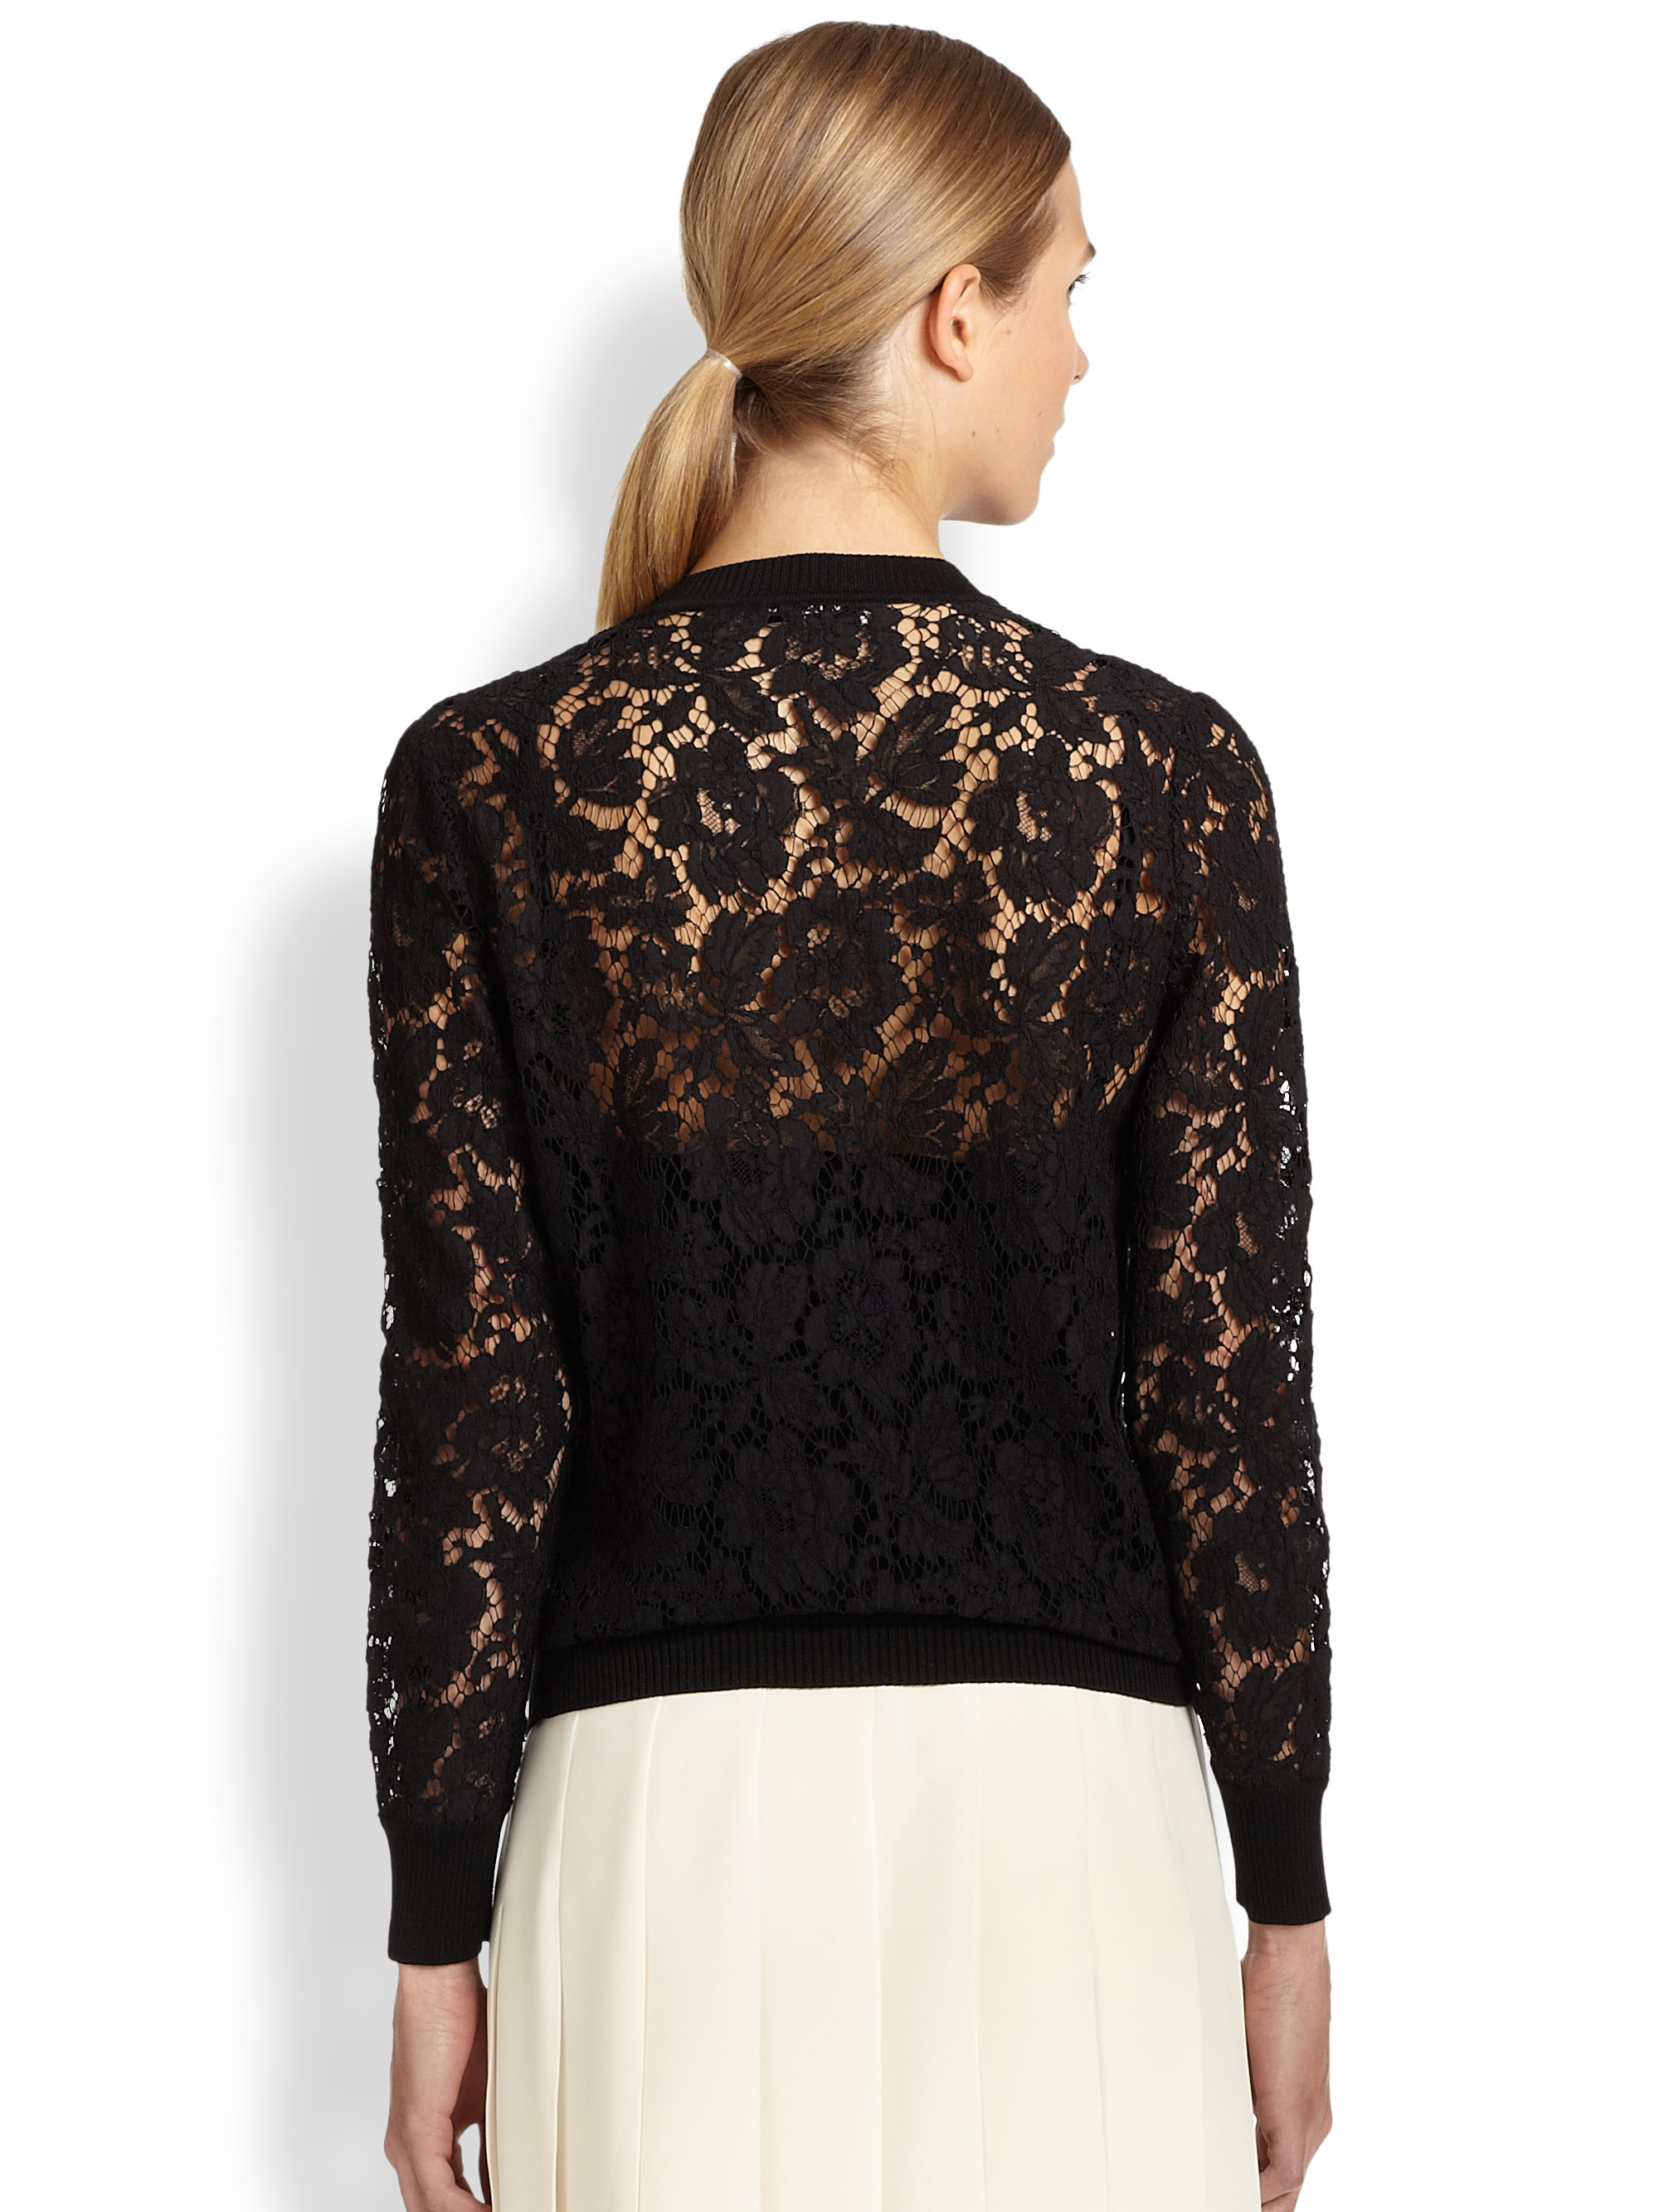 Valentino Lace Cardigan in Black | Lyst